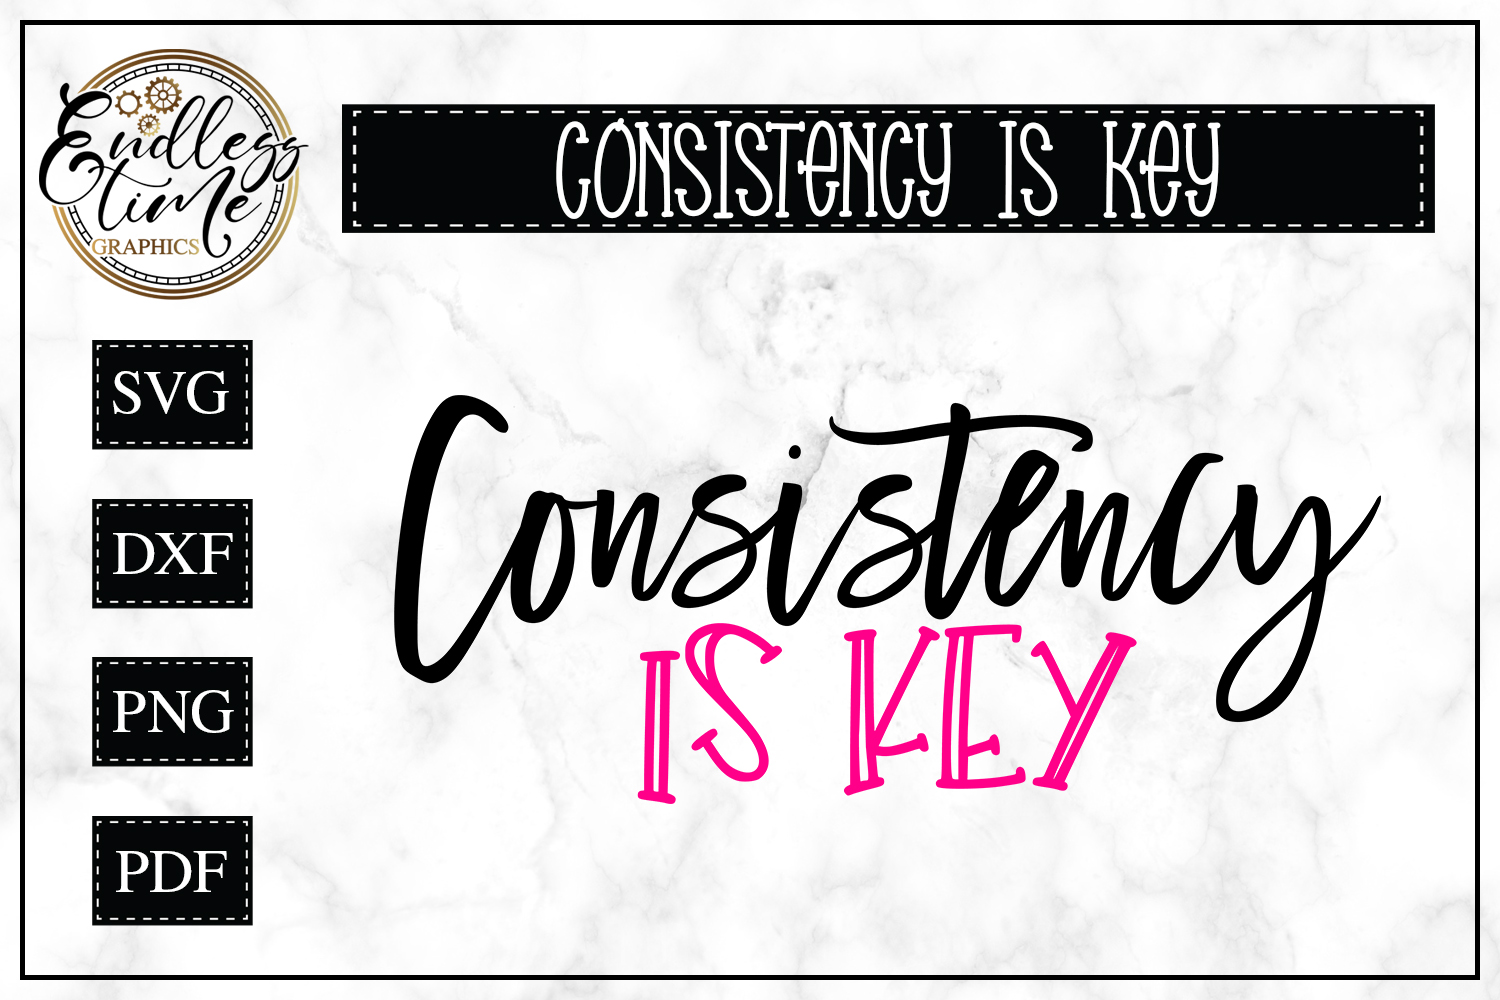 Consistency is Key SVG - A Motivational SVG example image 1